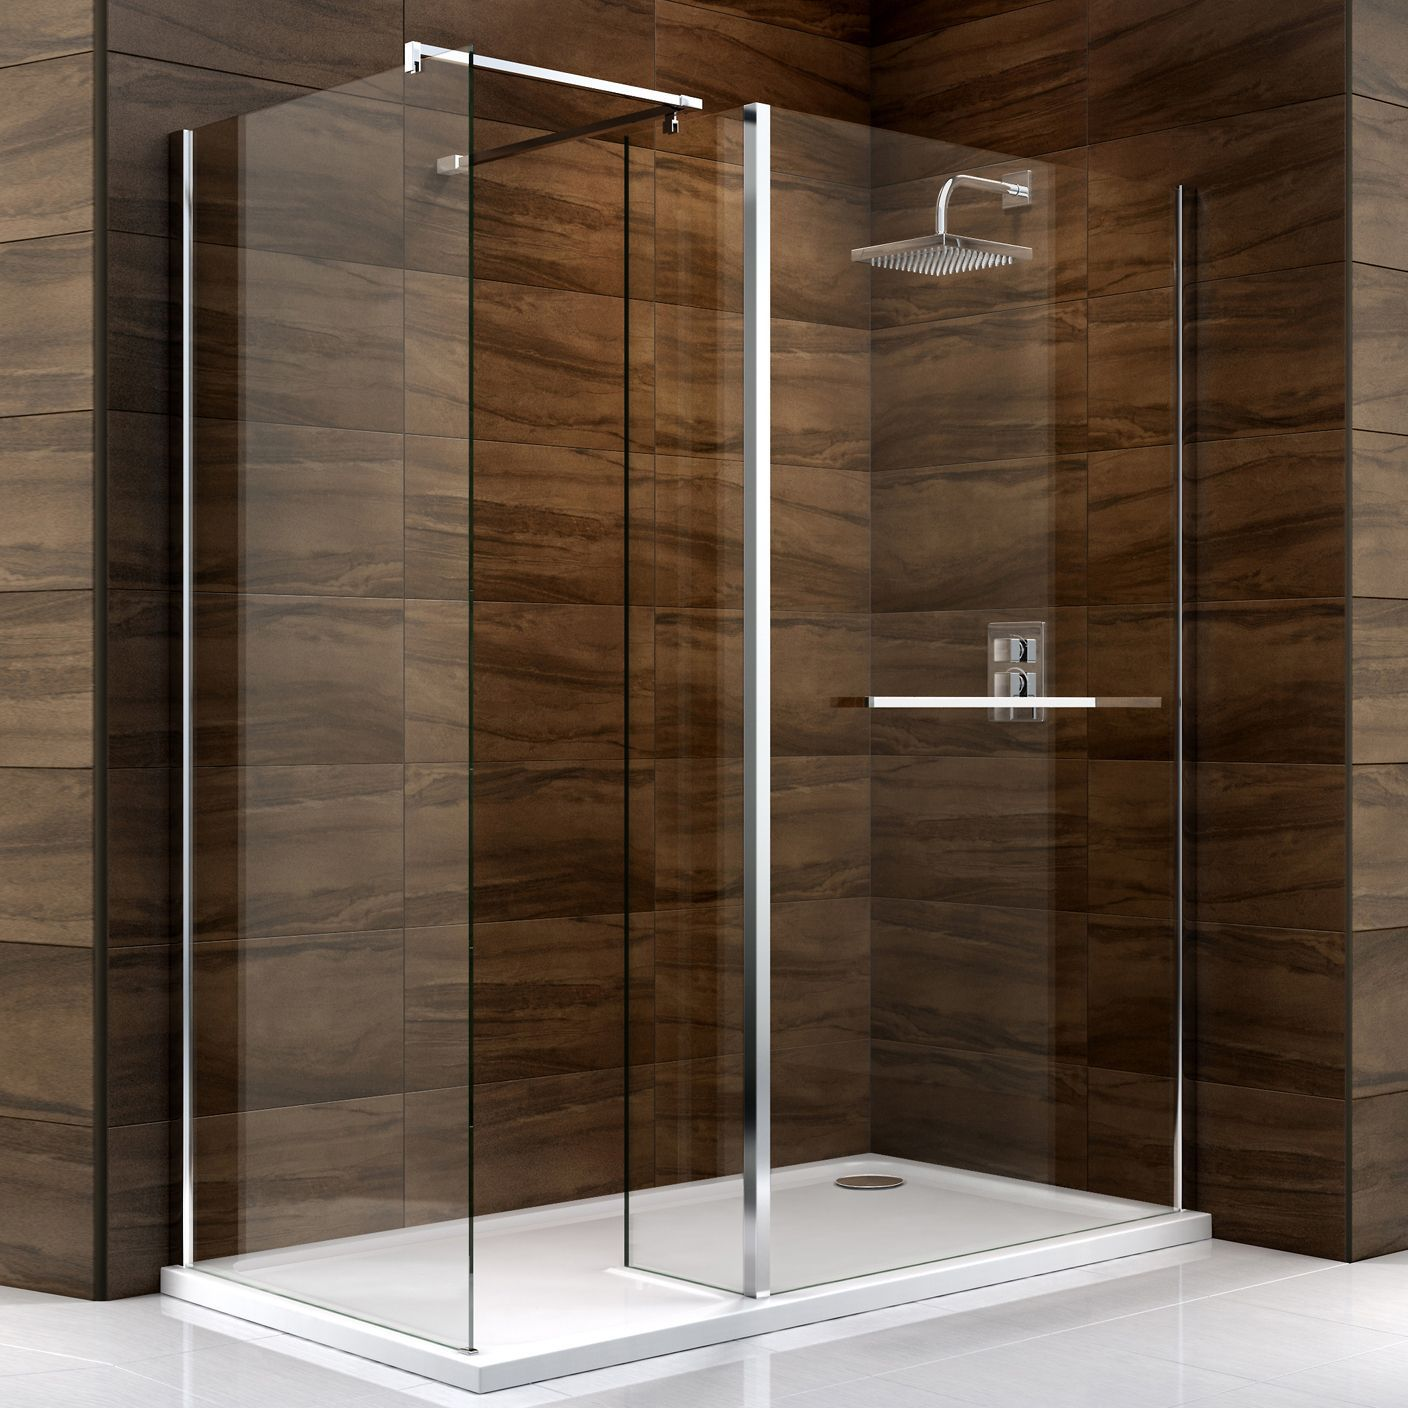 Cooke lewis cascata rectangular rh shower enclosure with B q bathroom design service